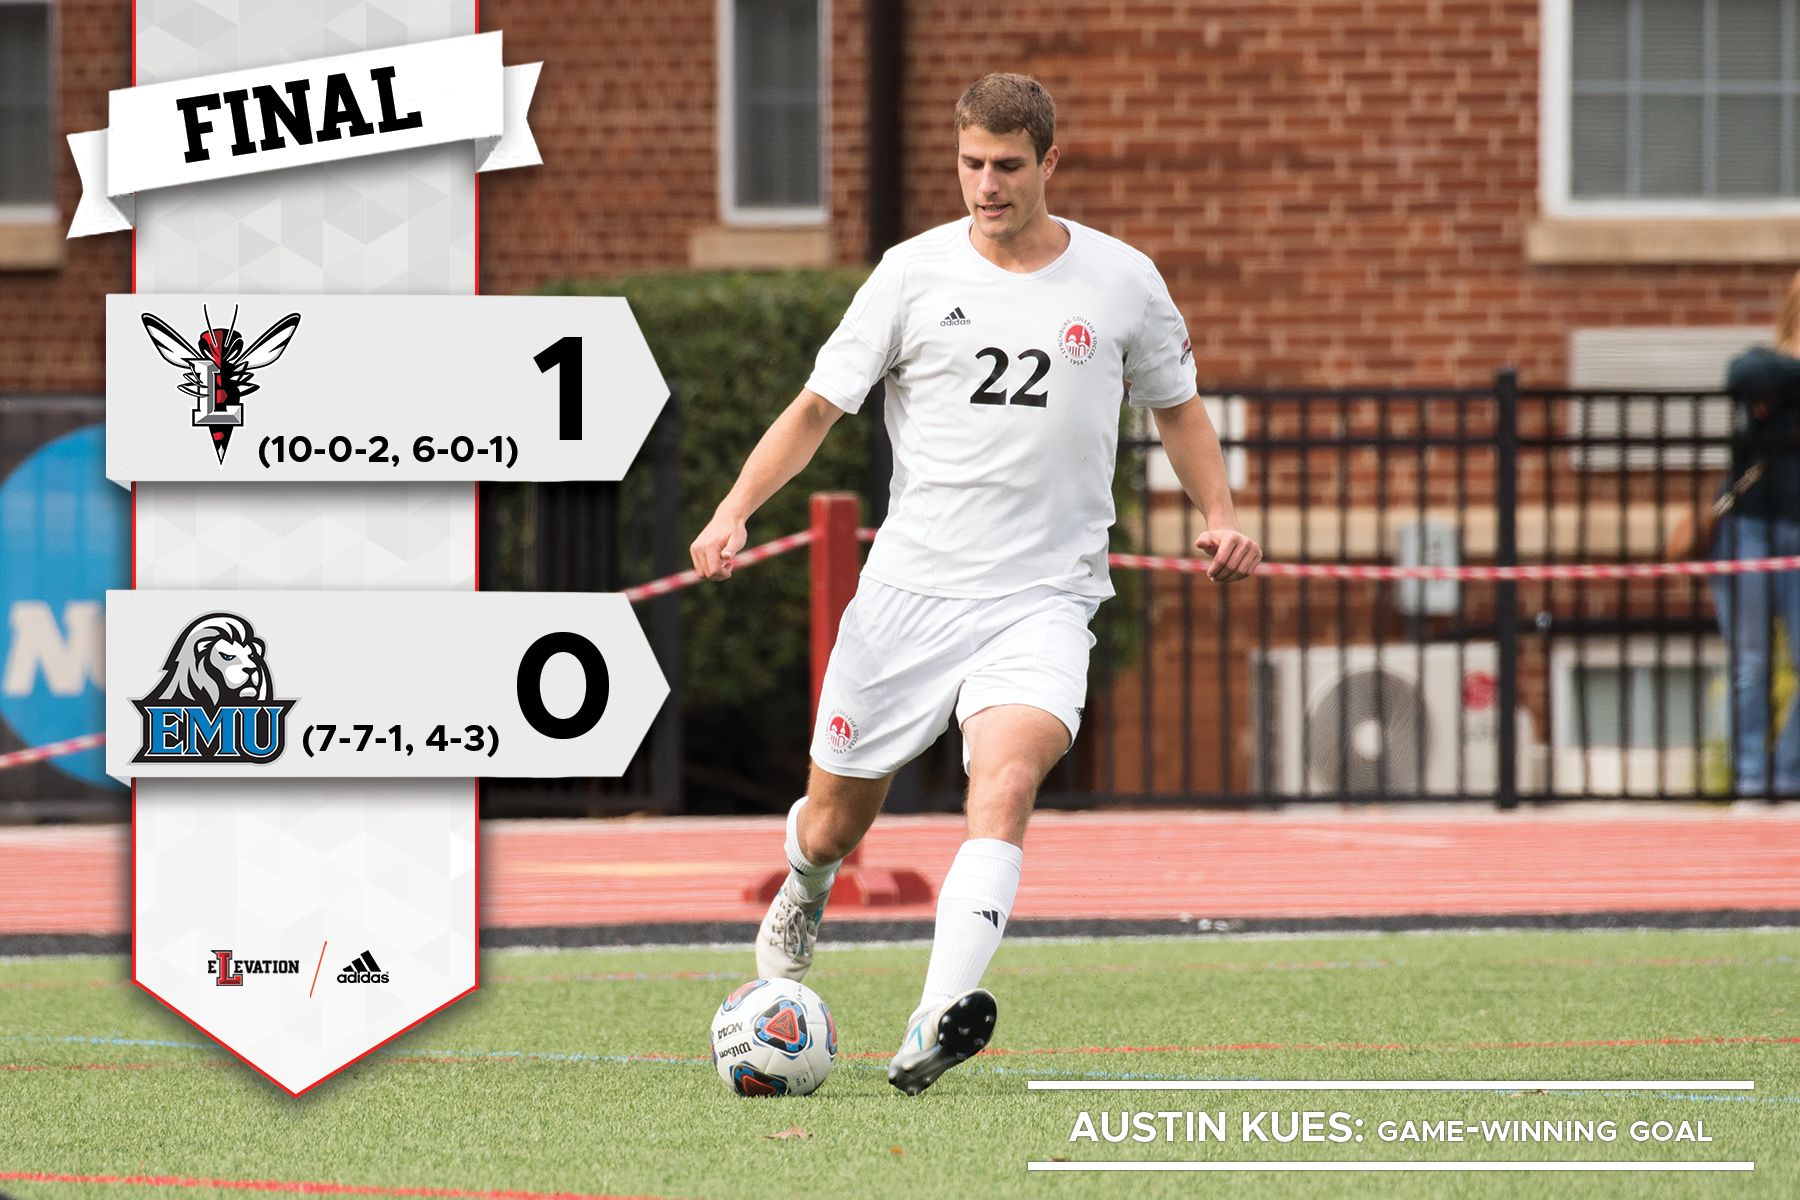 Austin Kues kicks a soccer ball. Graphic showing 1-0 final score and team logos.